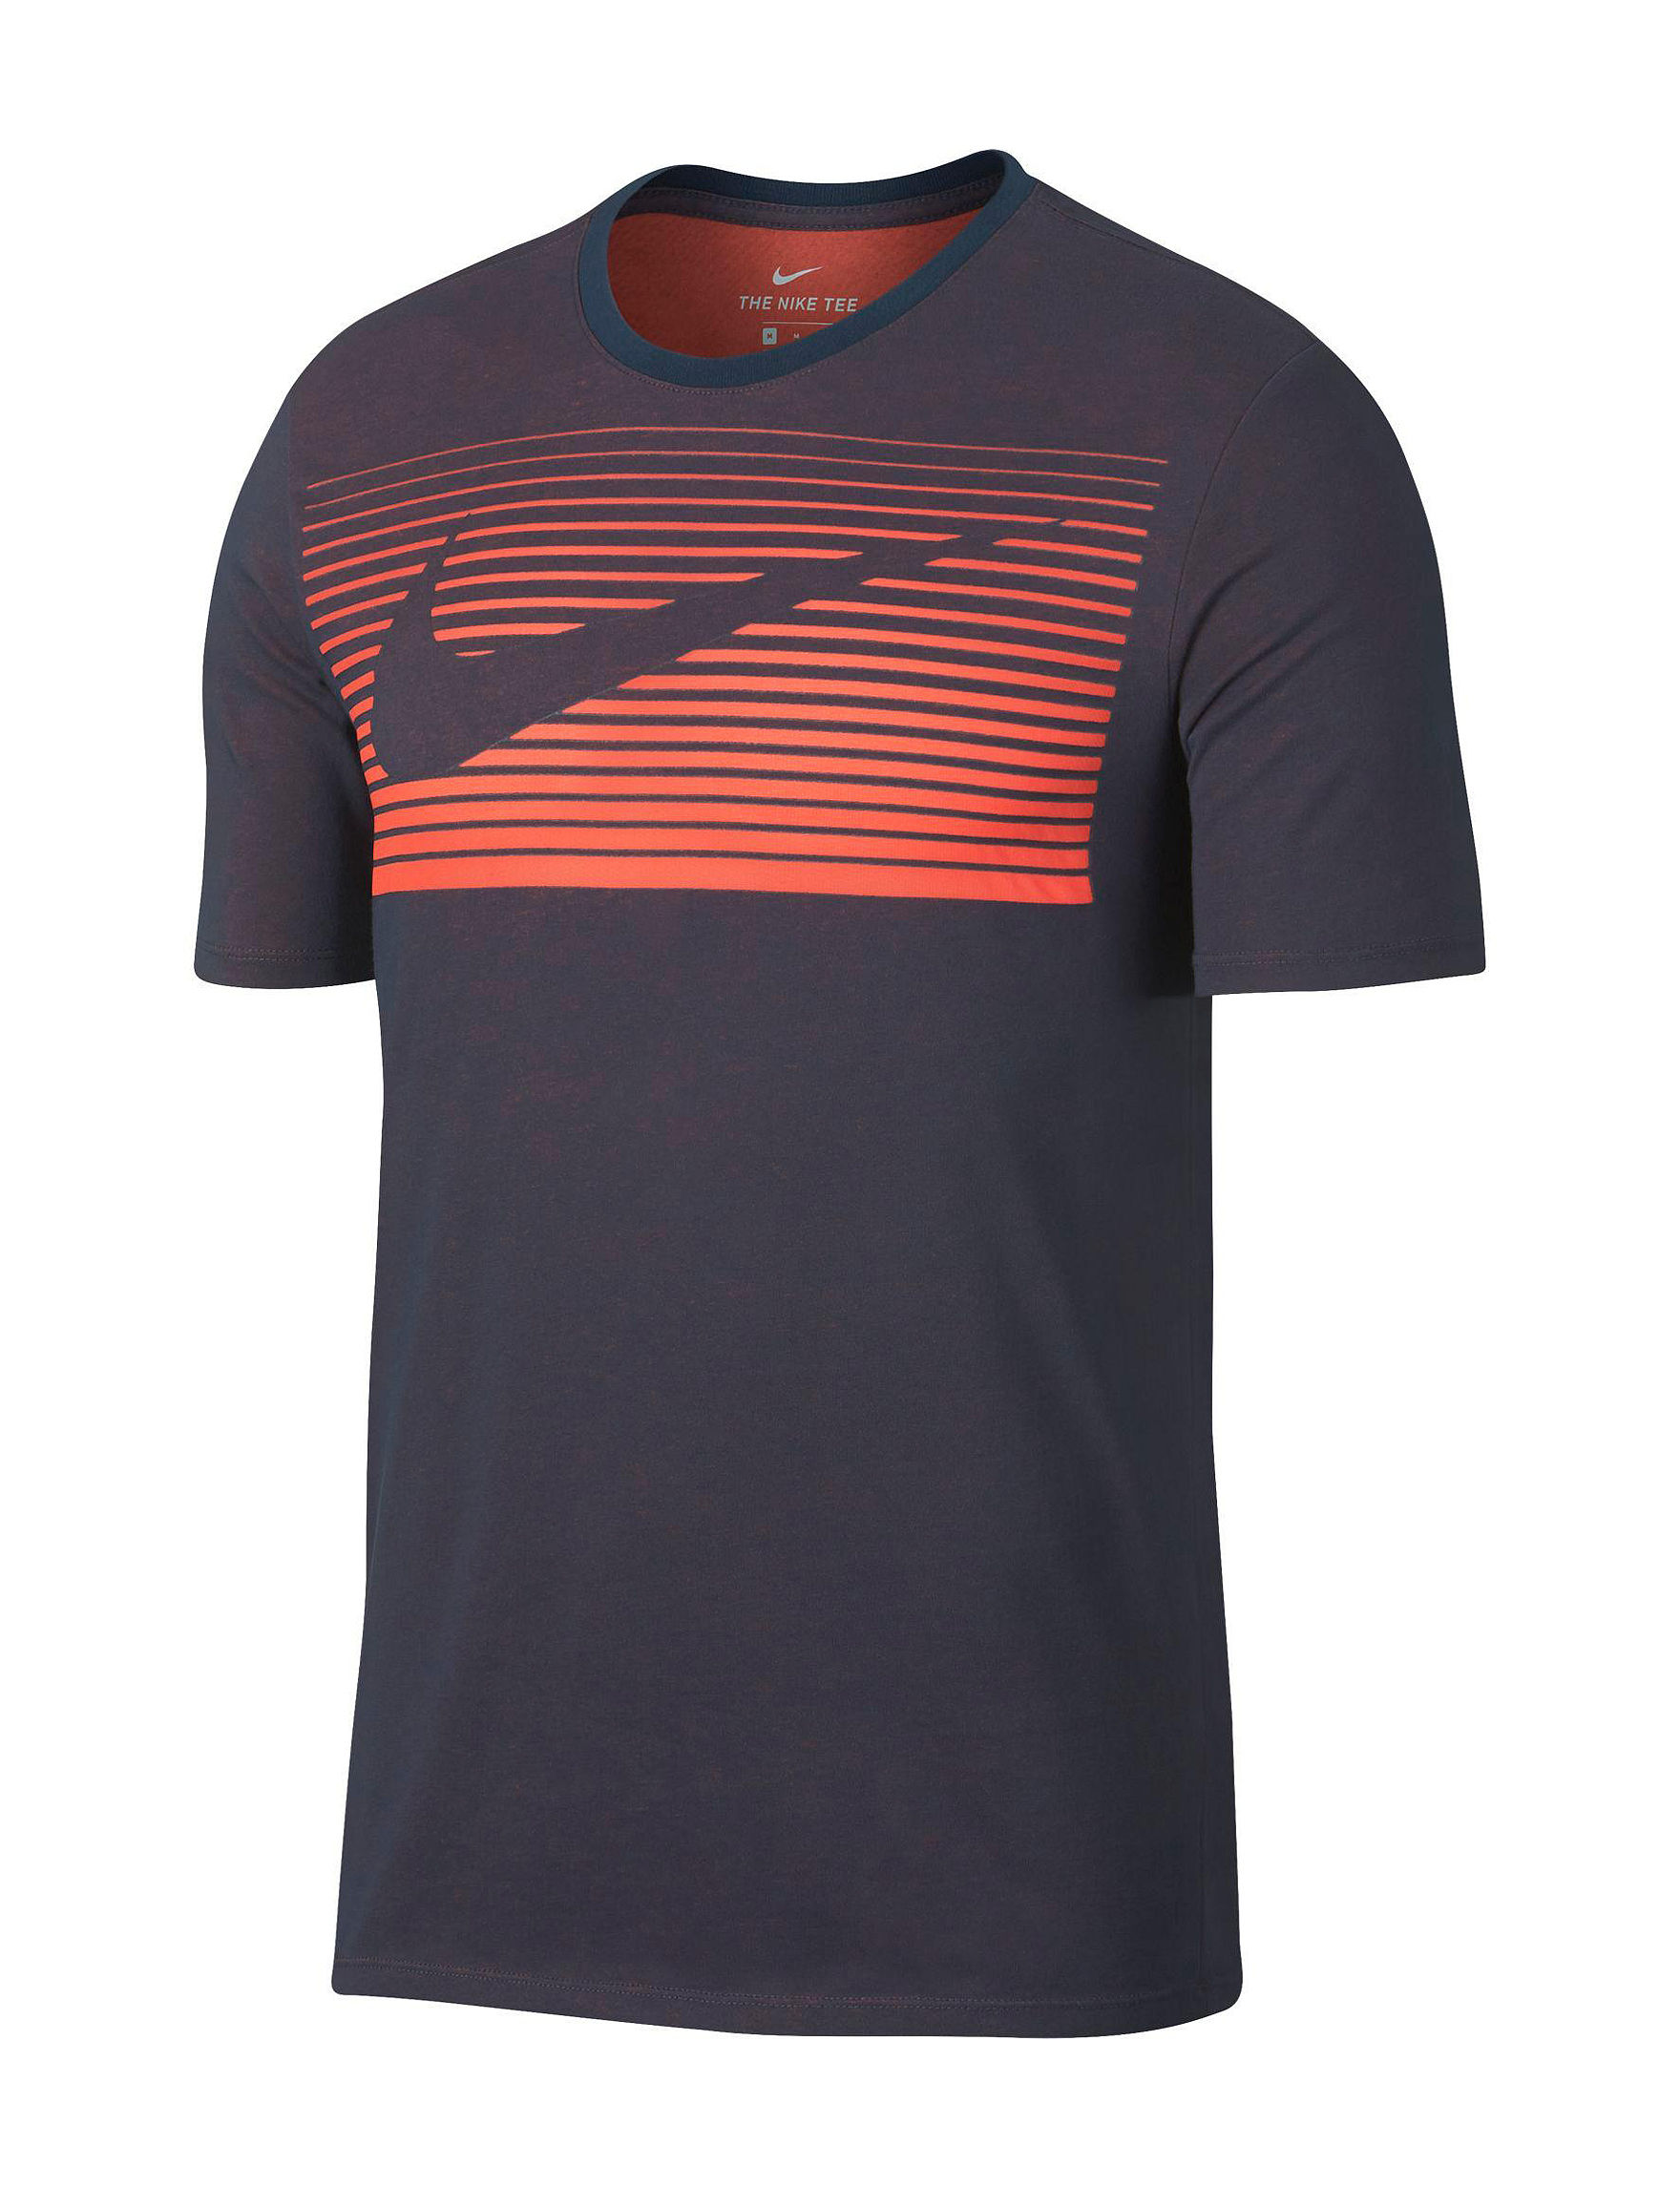 Nike Navy Tees & Tanks